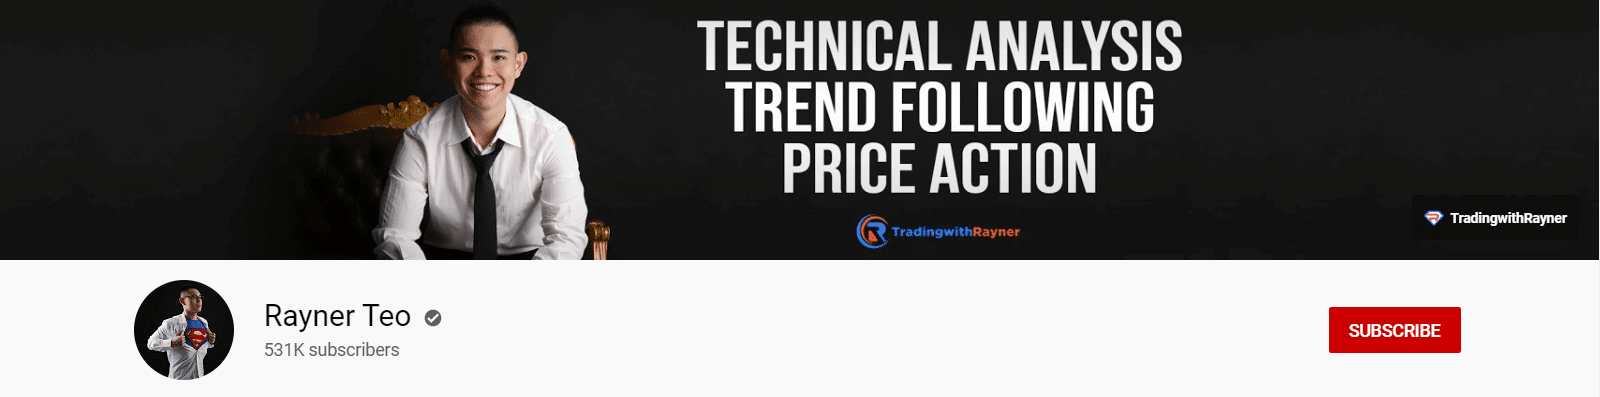 top 10 forex youtube channels - Rayner Teo